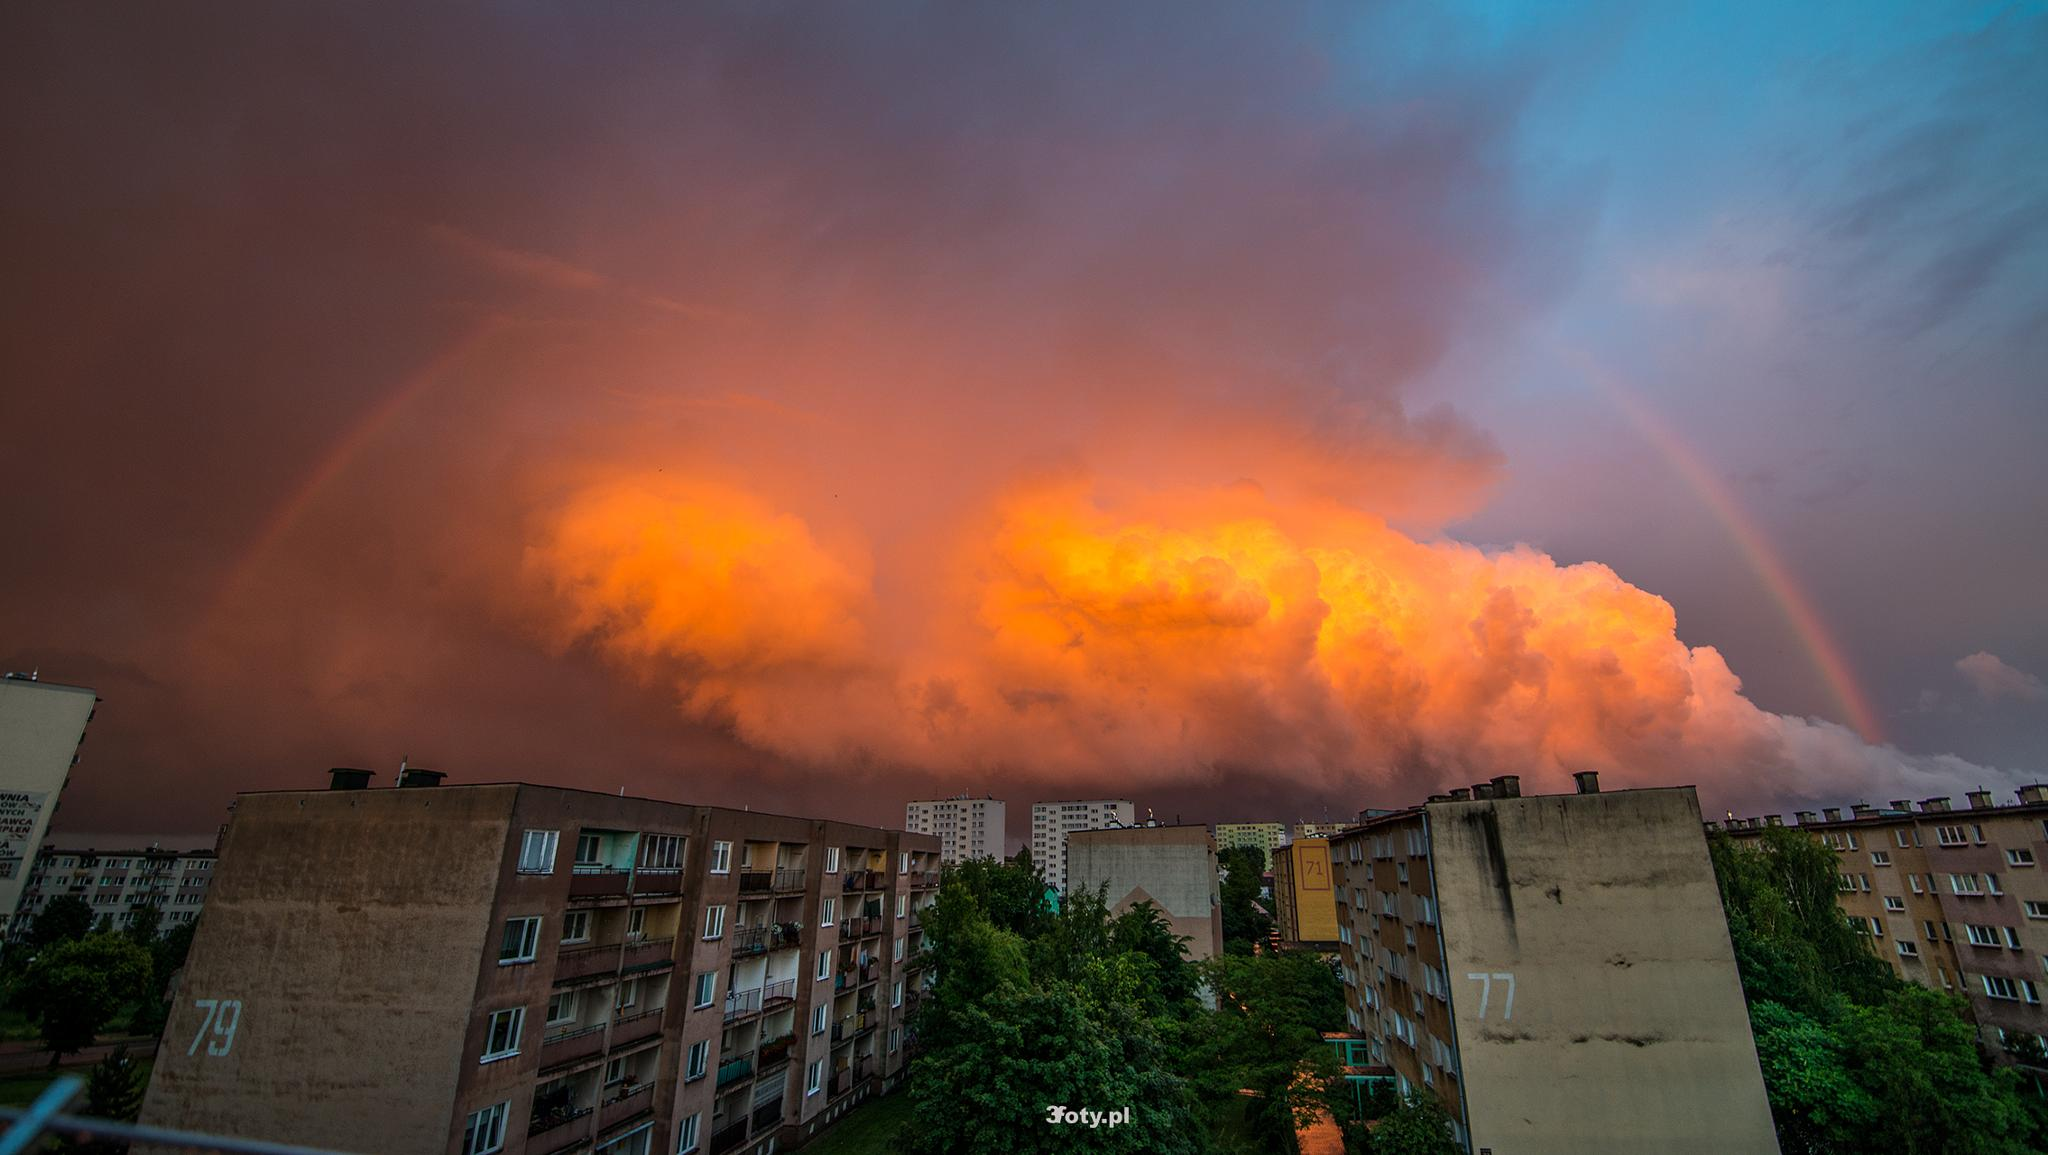 Fire clouds under rainbow by 3fotypl